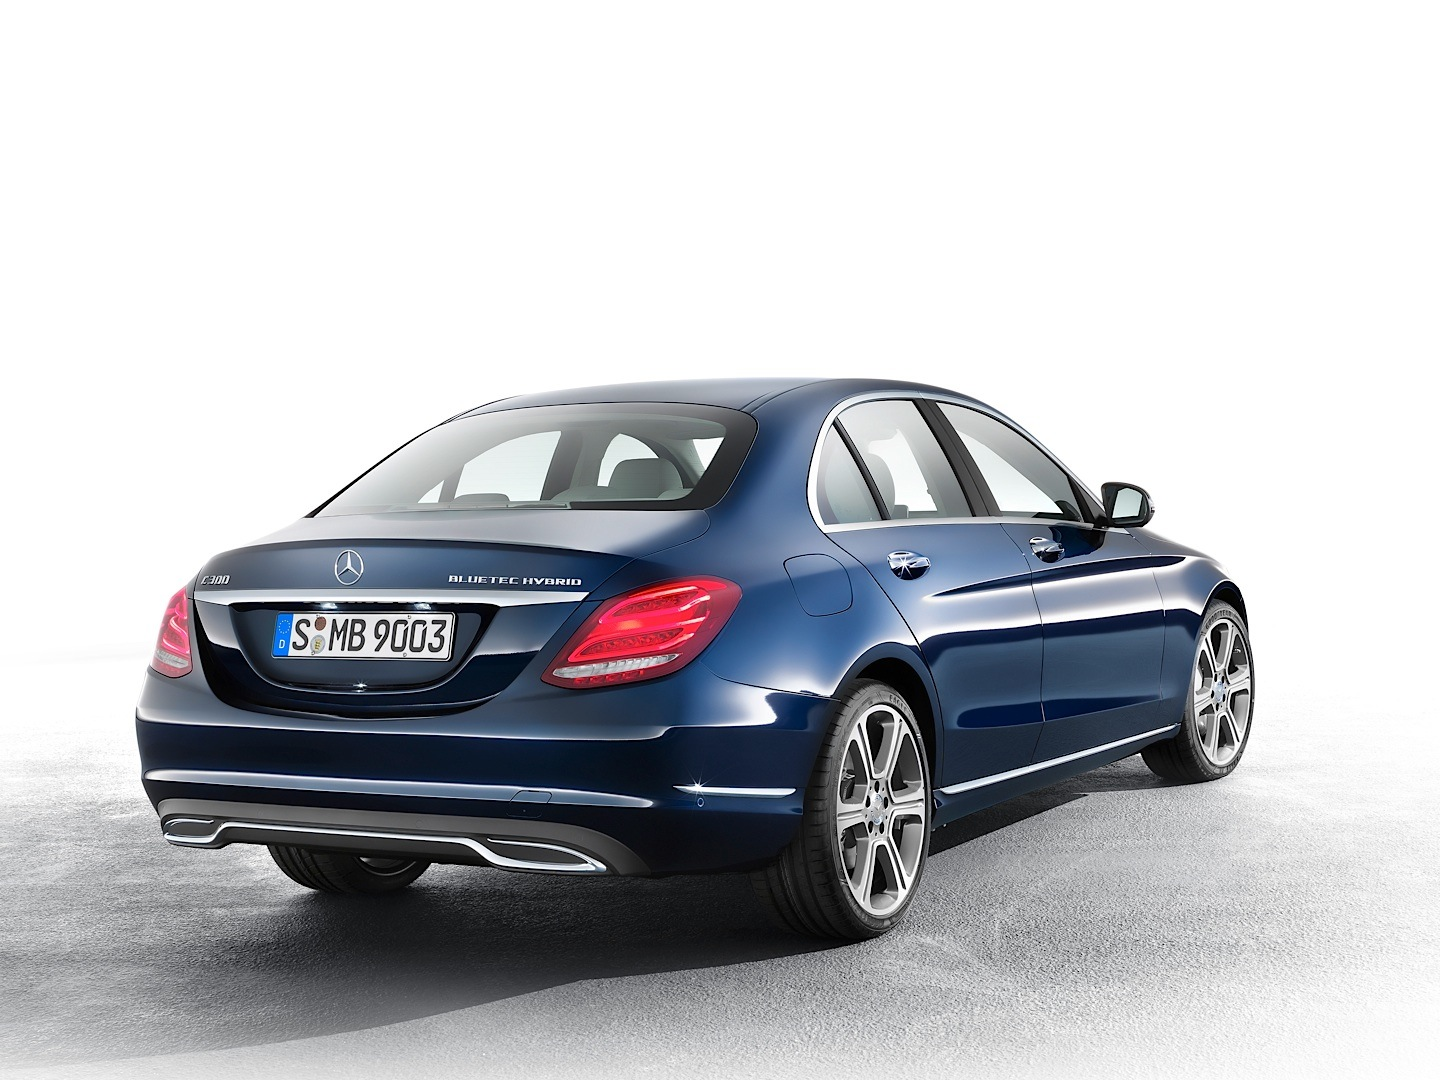 New C Class 2015 Mercedes Benz C Class W205 Officially Unveiled